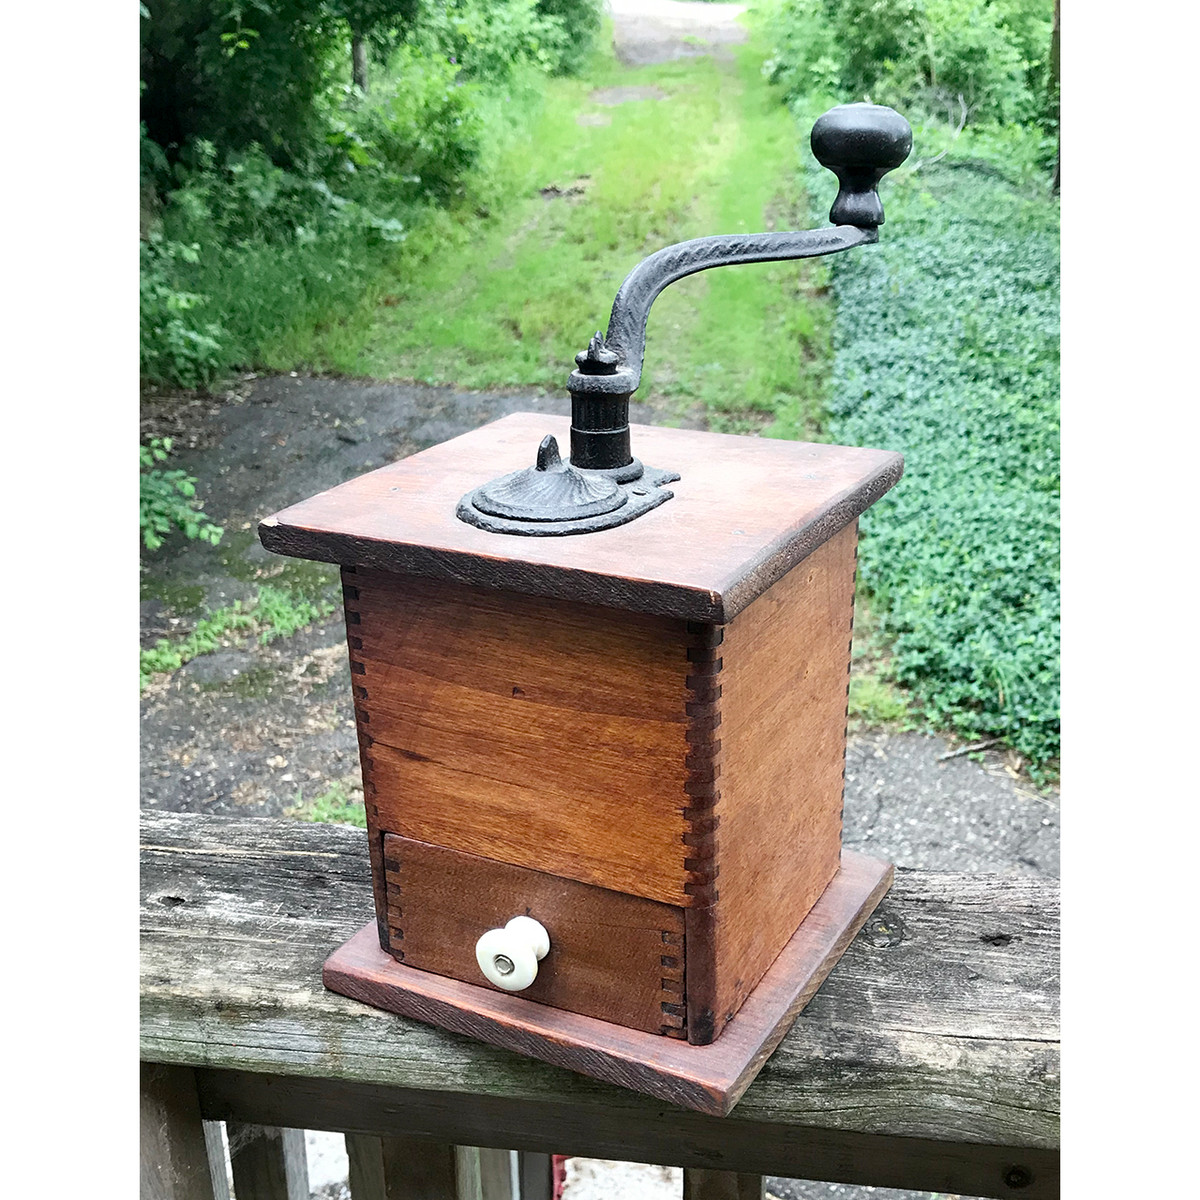 A18080 - Antique Coffee Grinder